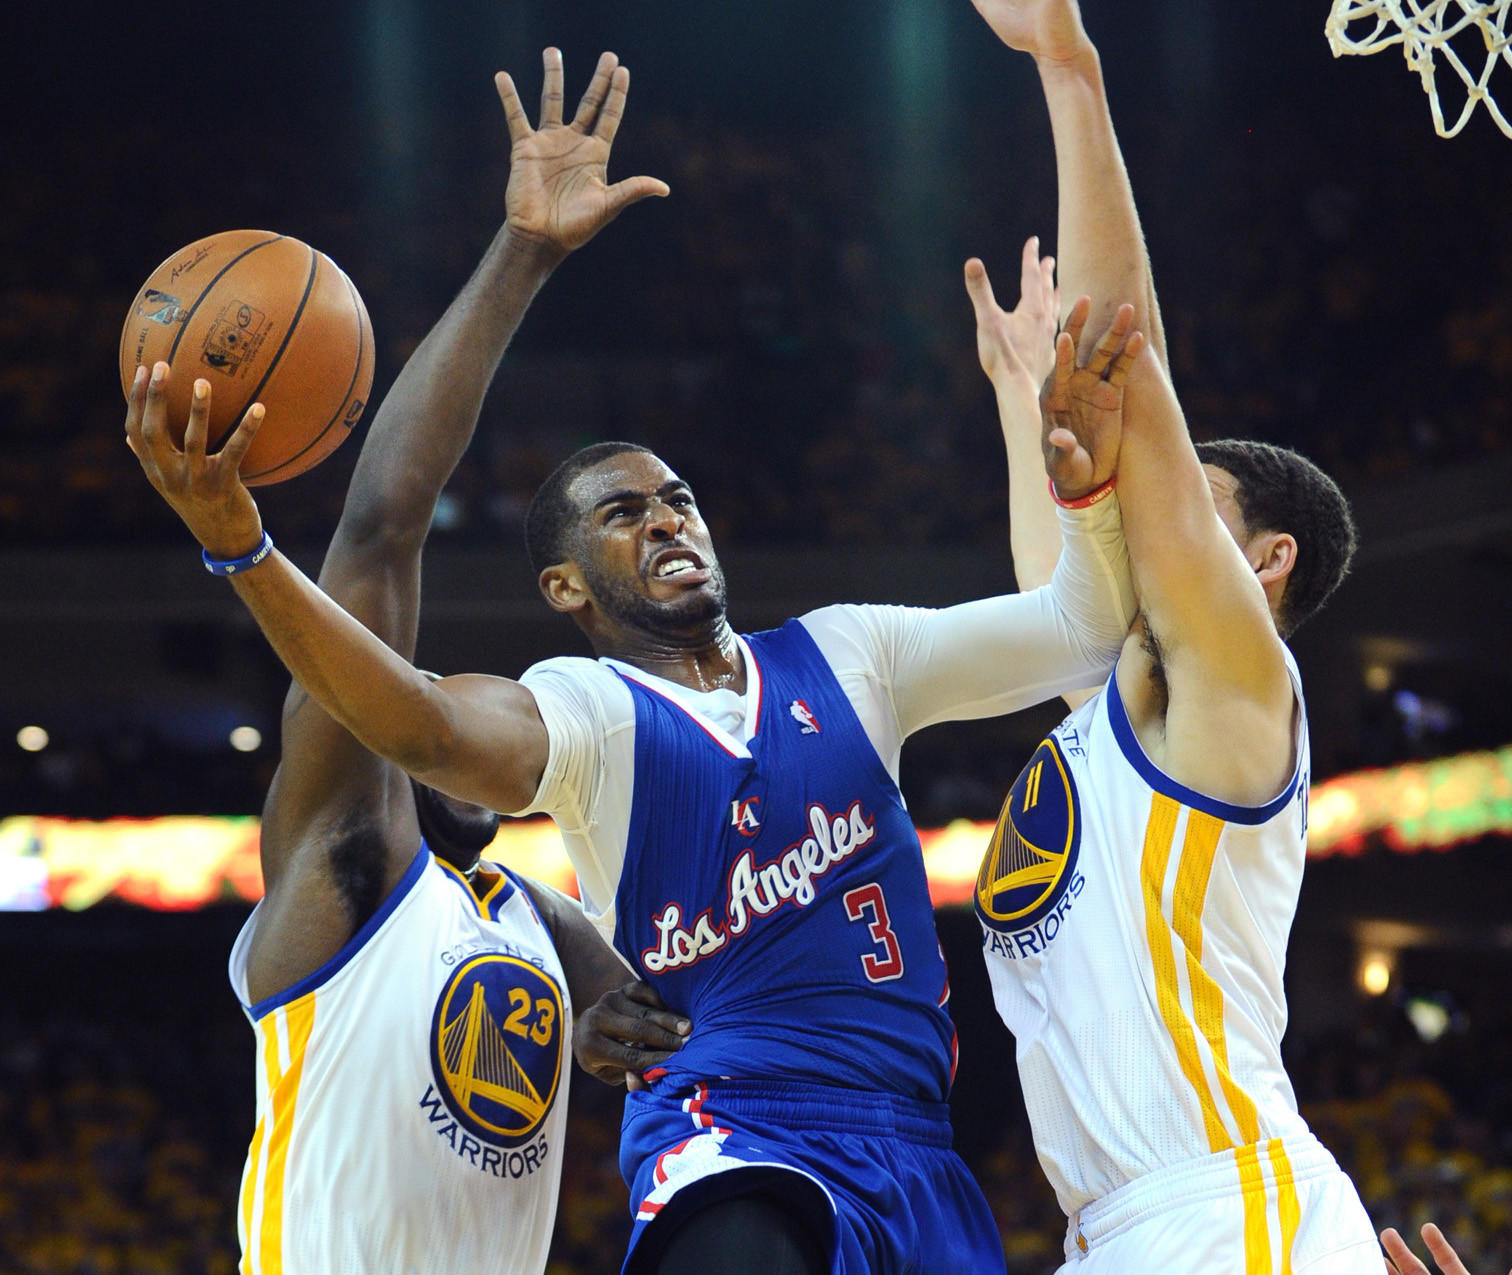 Clippers point guard Chris Paul drives between Warriors power forward Draymond Green, left, and guard Klay Thompson for a layup in the first half.